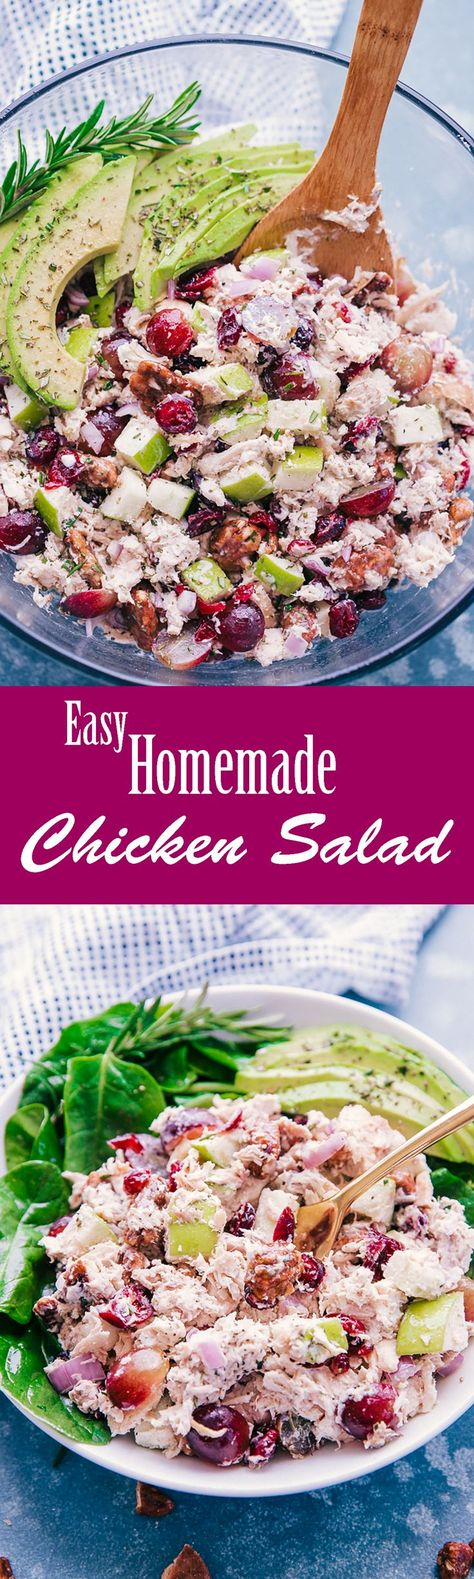 Easy Homemade Chicken Salad is a perfect way to enjoy a light lunch or serve as a side with dinner.  This salad has honey roasted pecans, grapes, chicken, creamy avocados and is tossed with a burst of creamy dressing. #easyhomemadechickensalad #chickensalad #creamydressing #salad #dinner #lunch #food #recipes #thefoodcafe #creamychickensalad